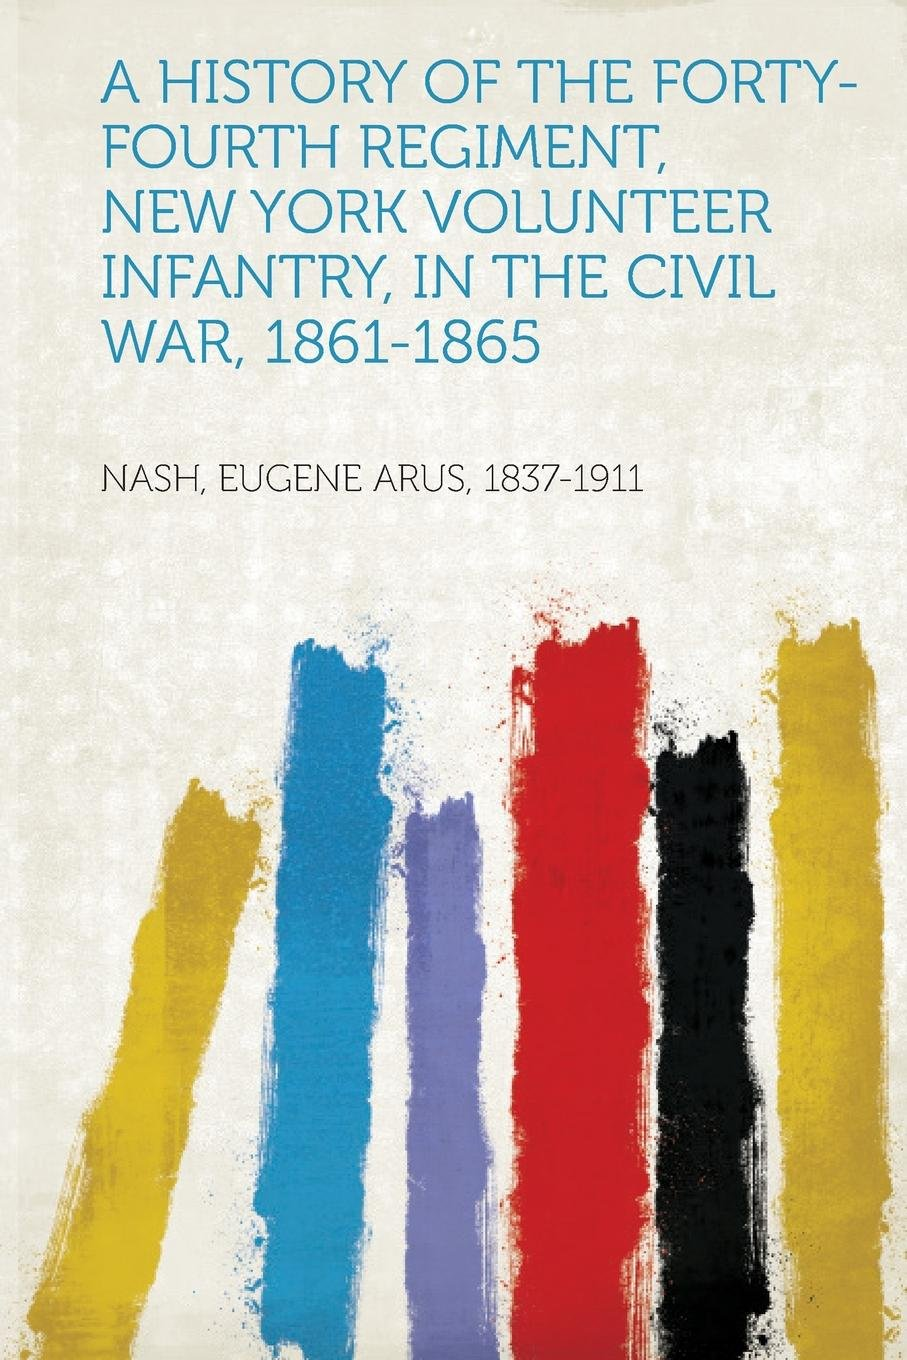 A History of the Forty-Fourth Regiment, New York Volunteer Infantry, in the Civil War, 1861-1865 pdf